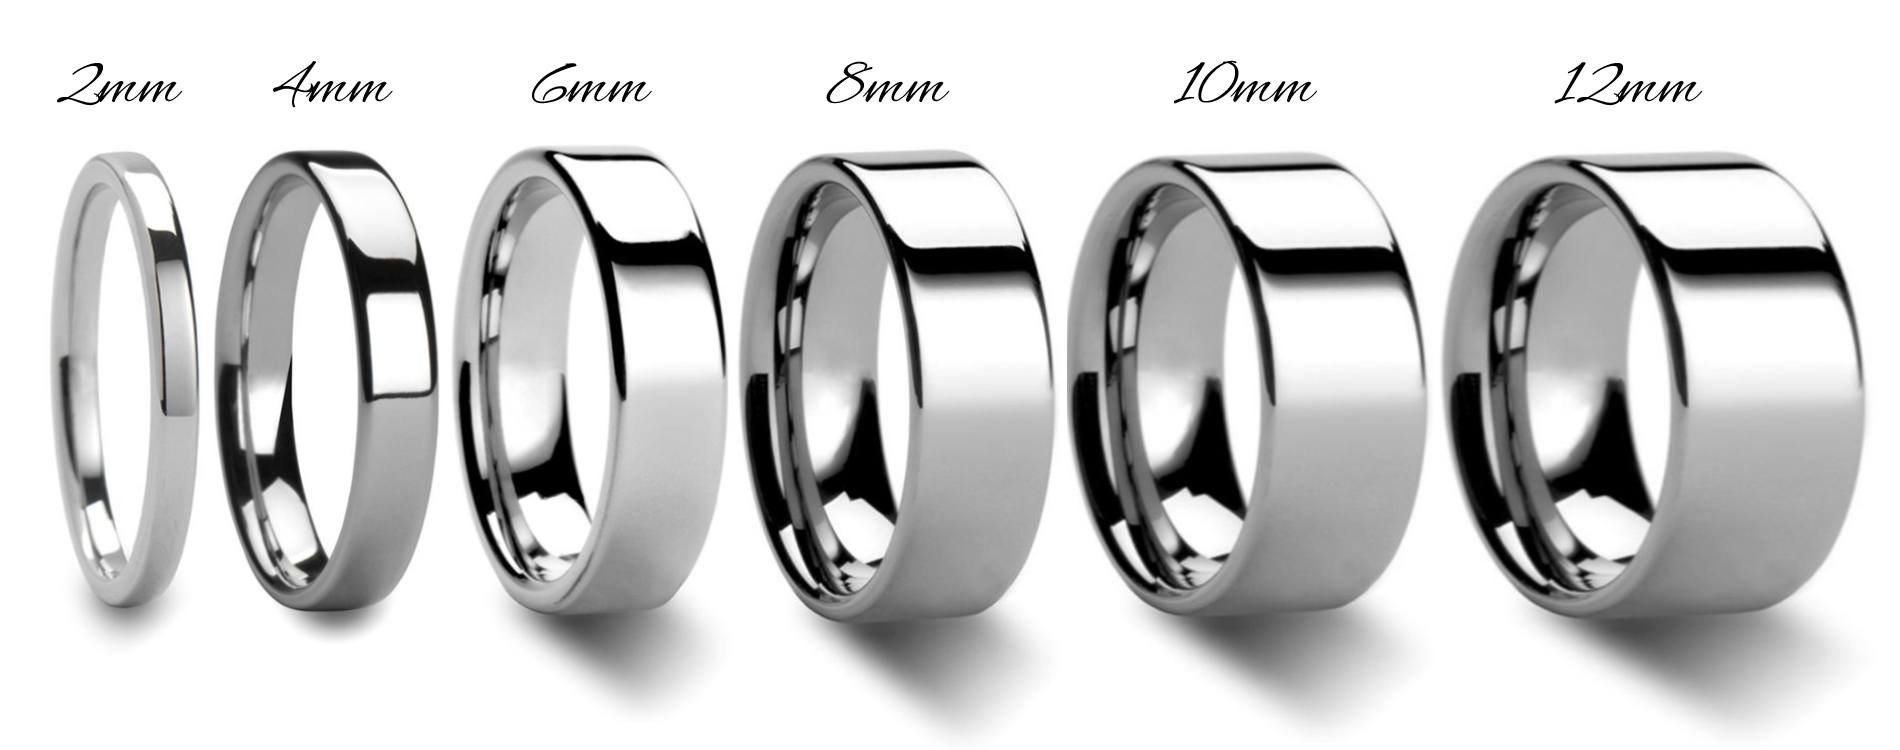 vansweden-jewelers-ring-width-comparison.png